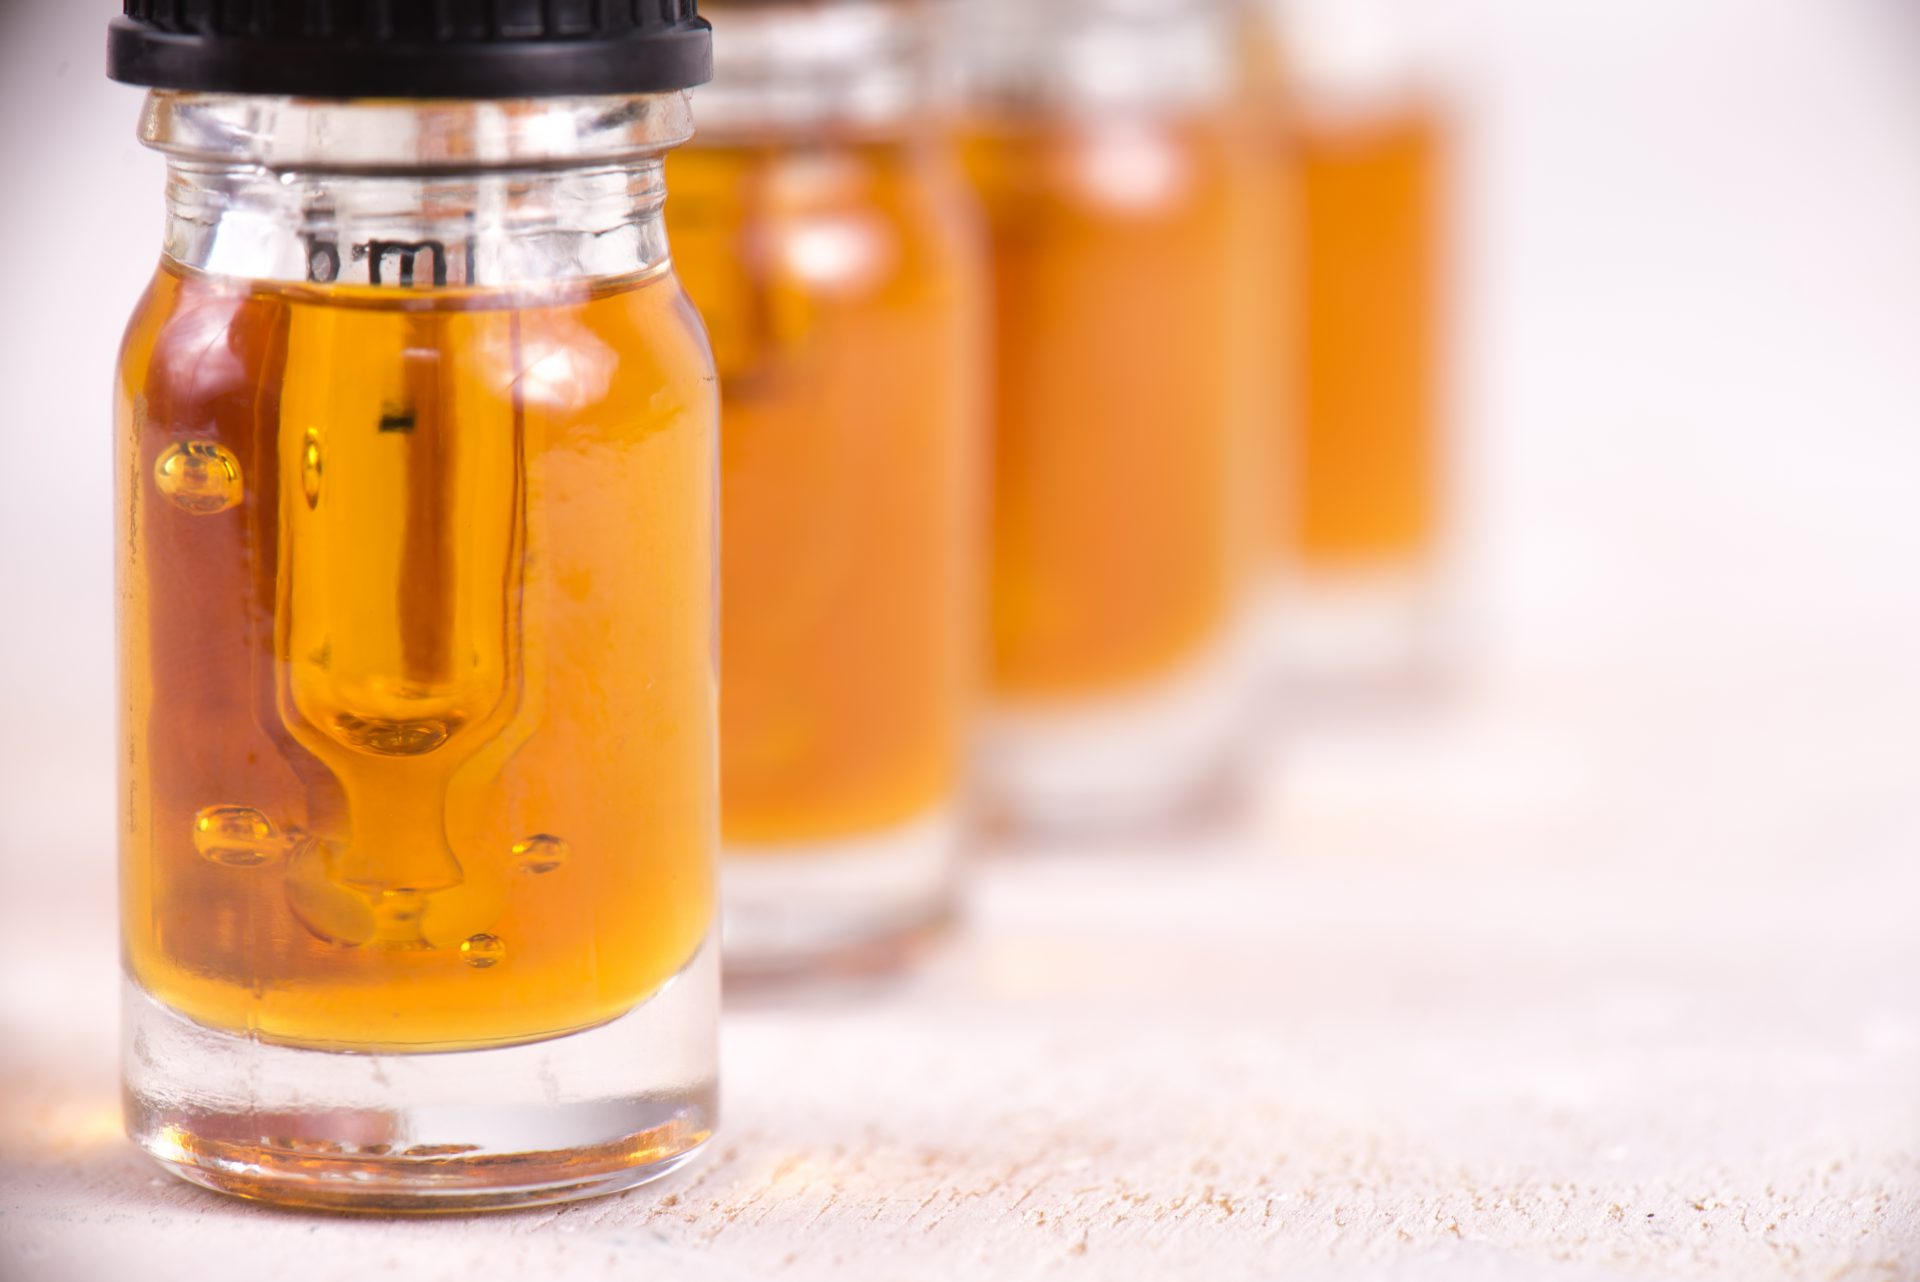 Top 5 Reasons CBD oil is Not Working for You